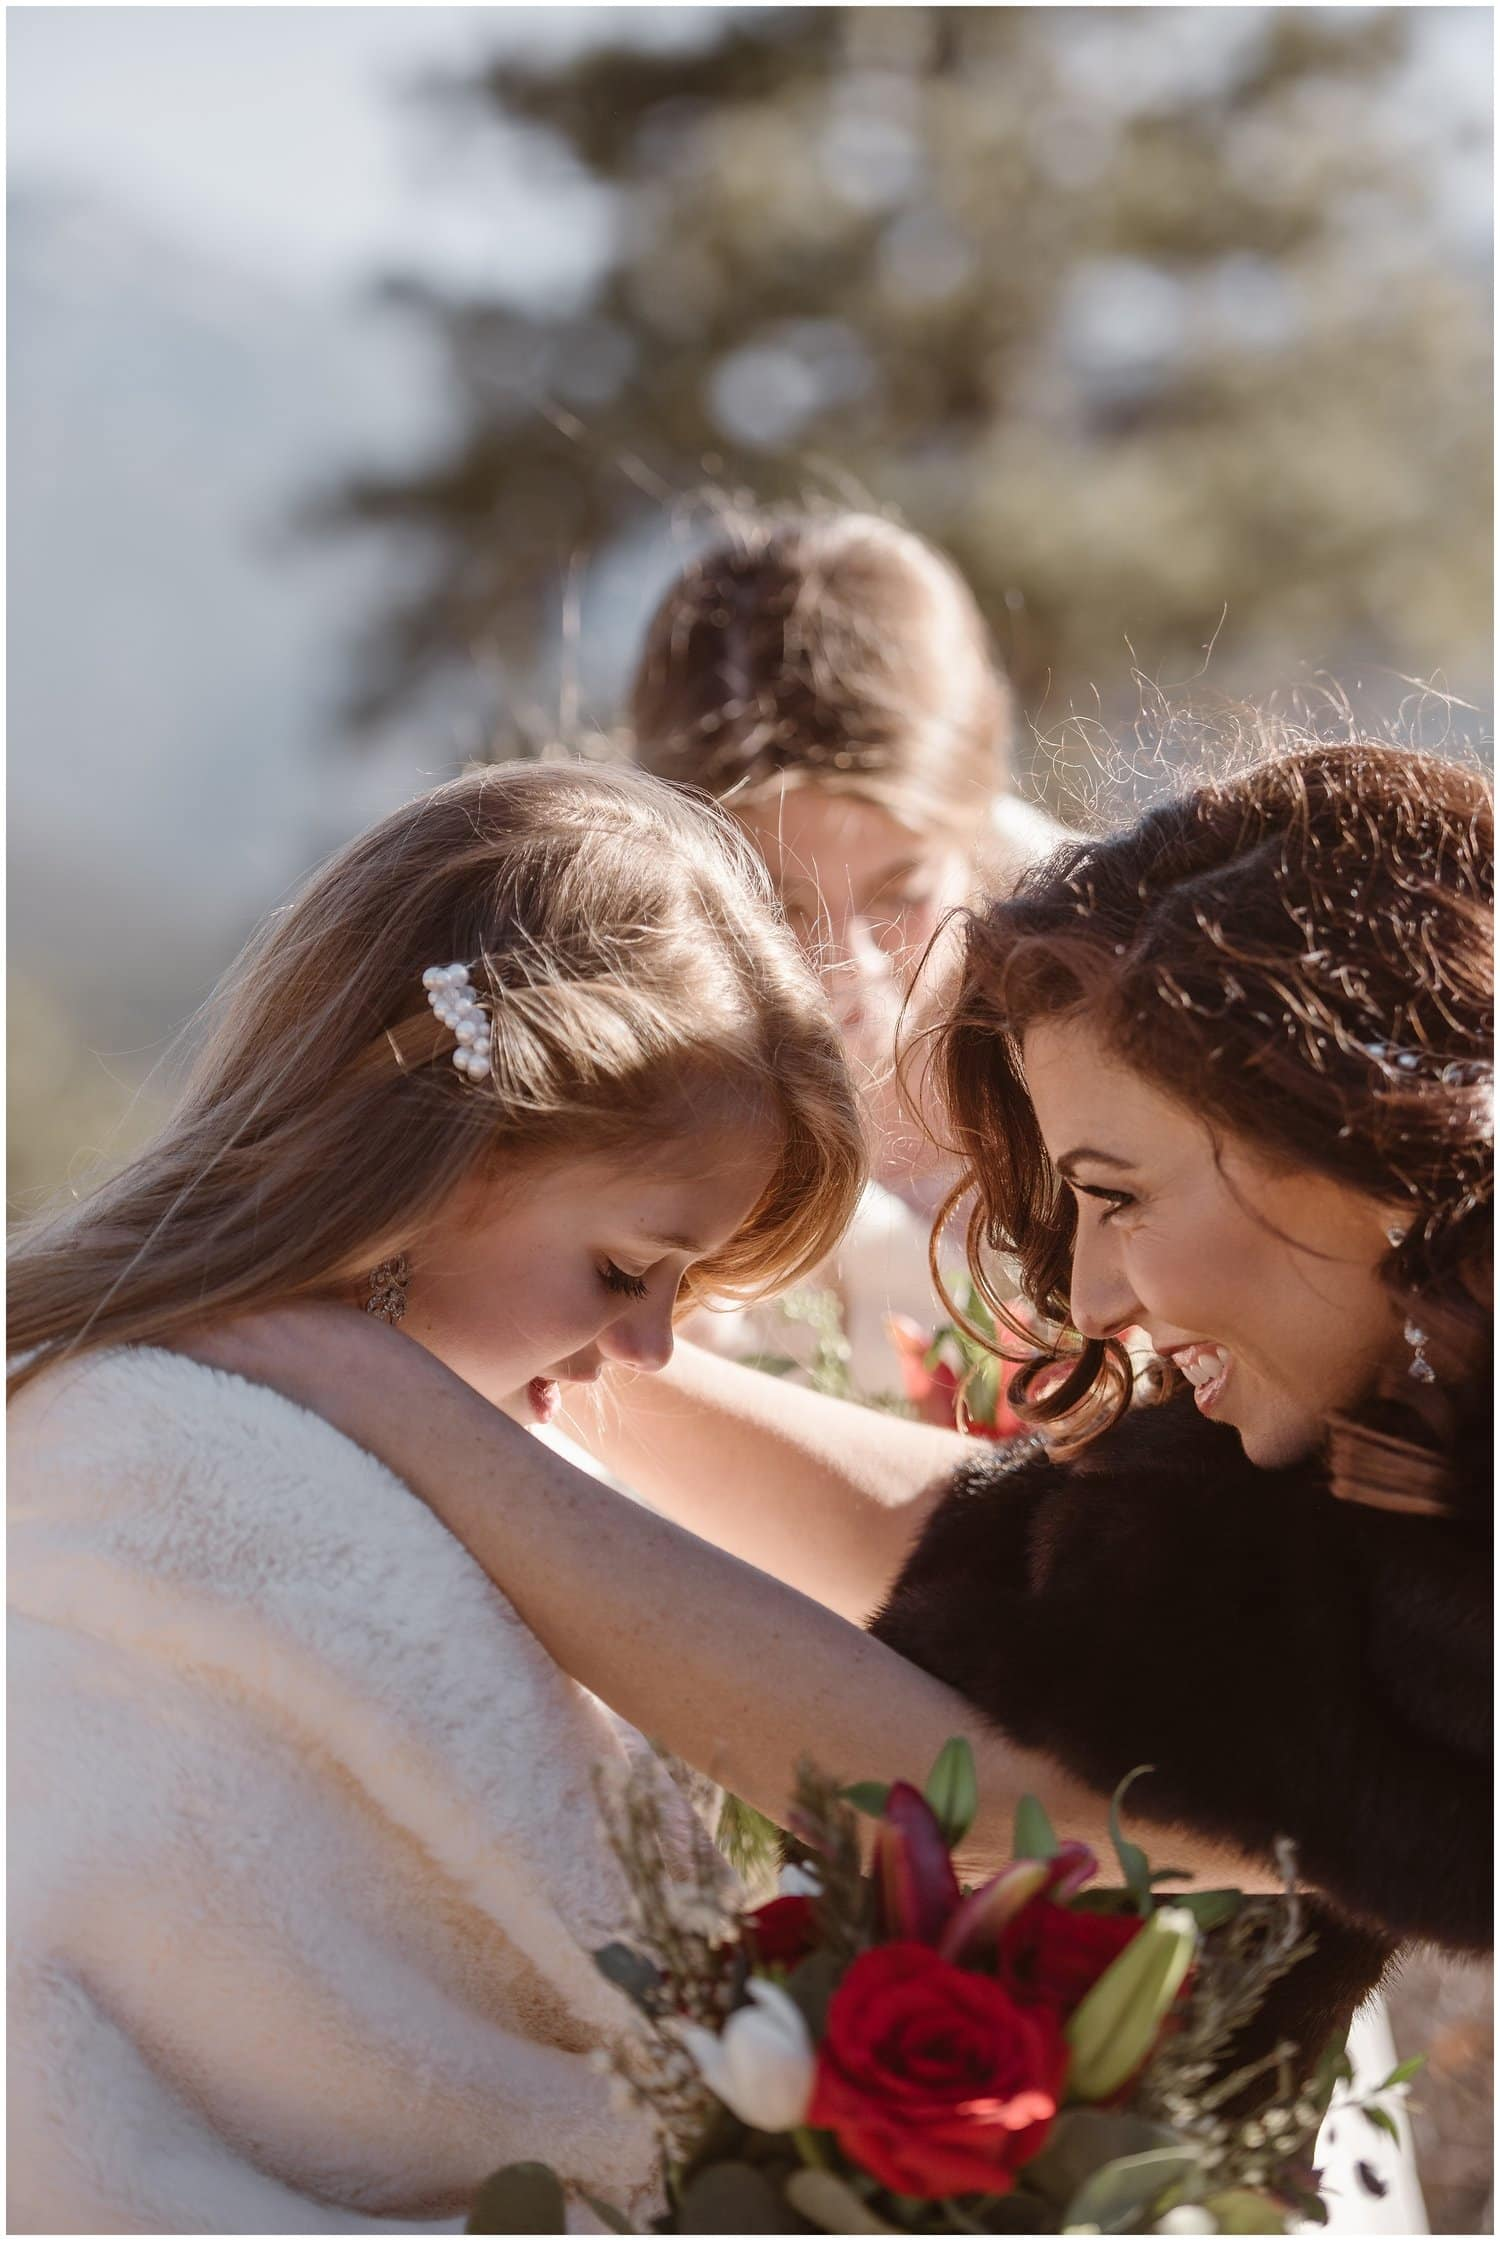 A bride smiles at her daughter on her wedding day.